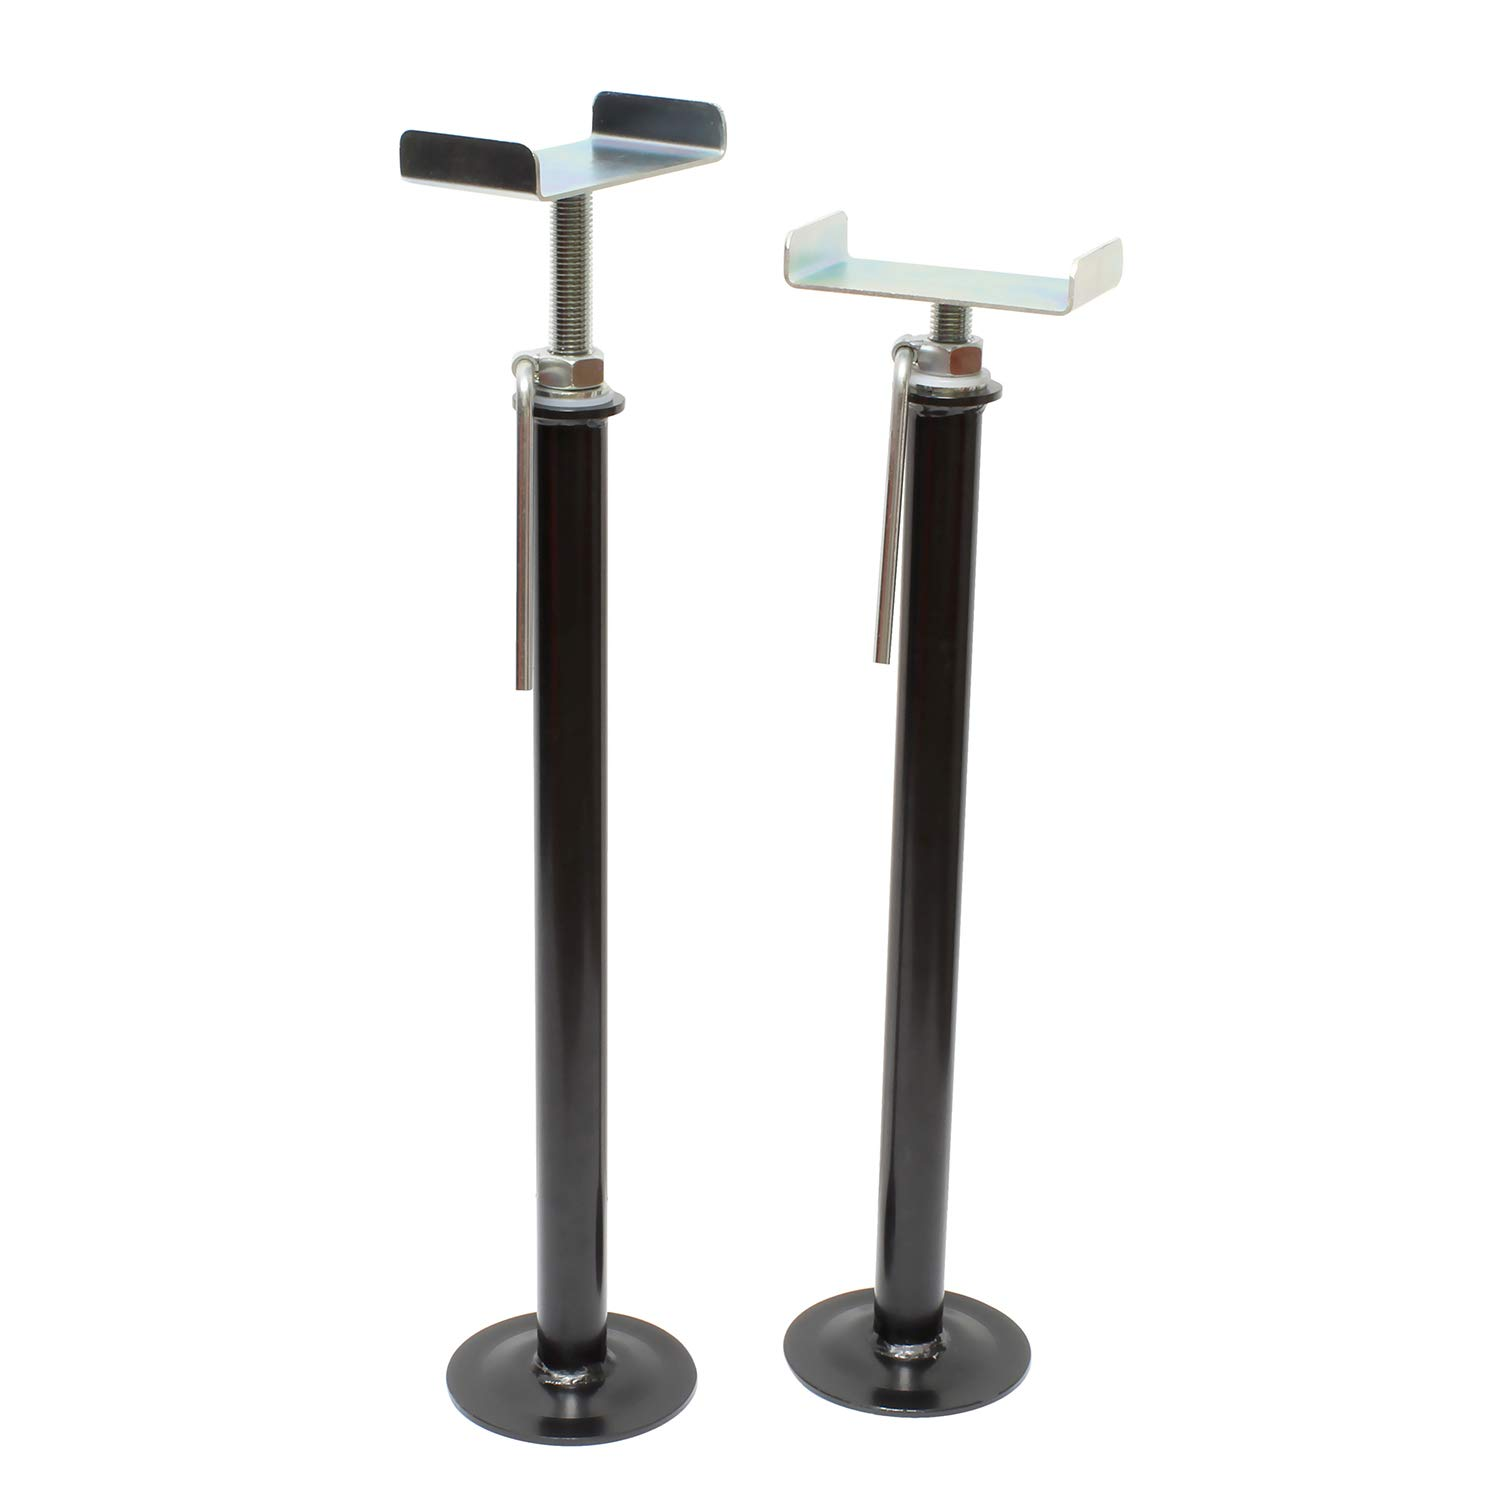 Dumble RV Slide Out Stabilizer Jacks - 26in-49in Travel Trailer Stabilizer Jacks Camper Jack Stands, 2 Piece Set by Dumble